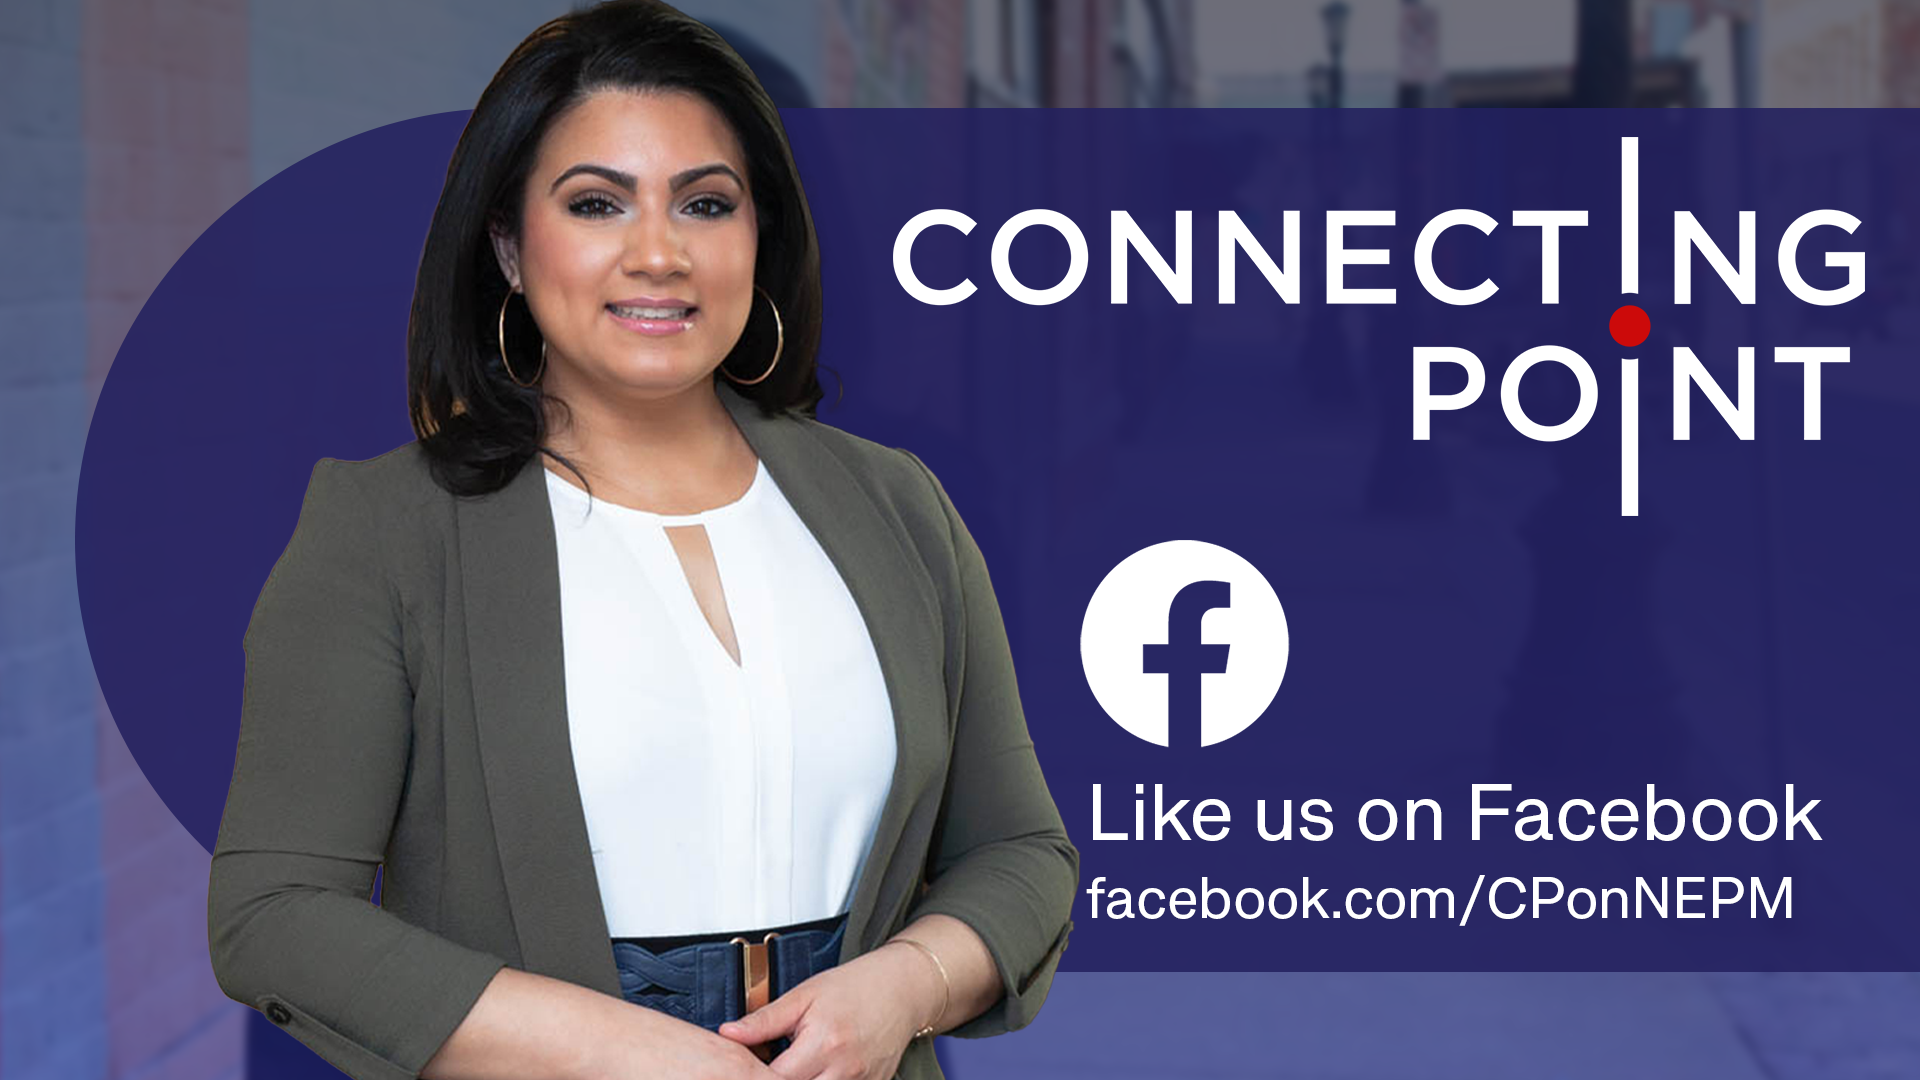 Like Connecting Point on Facebook!